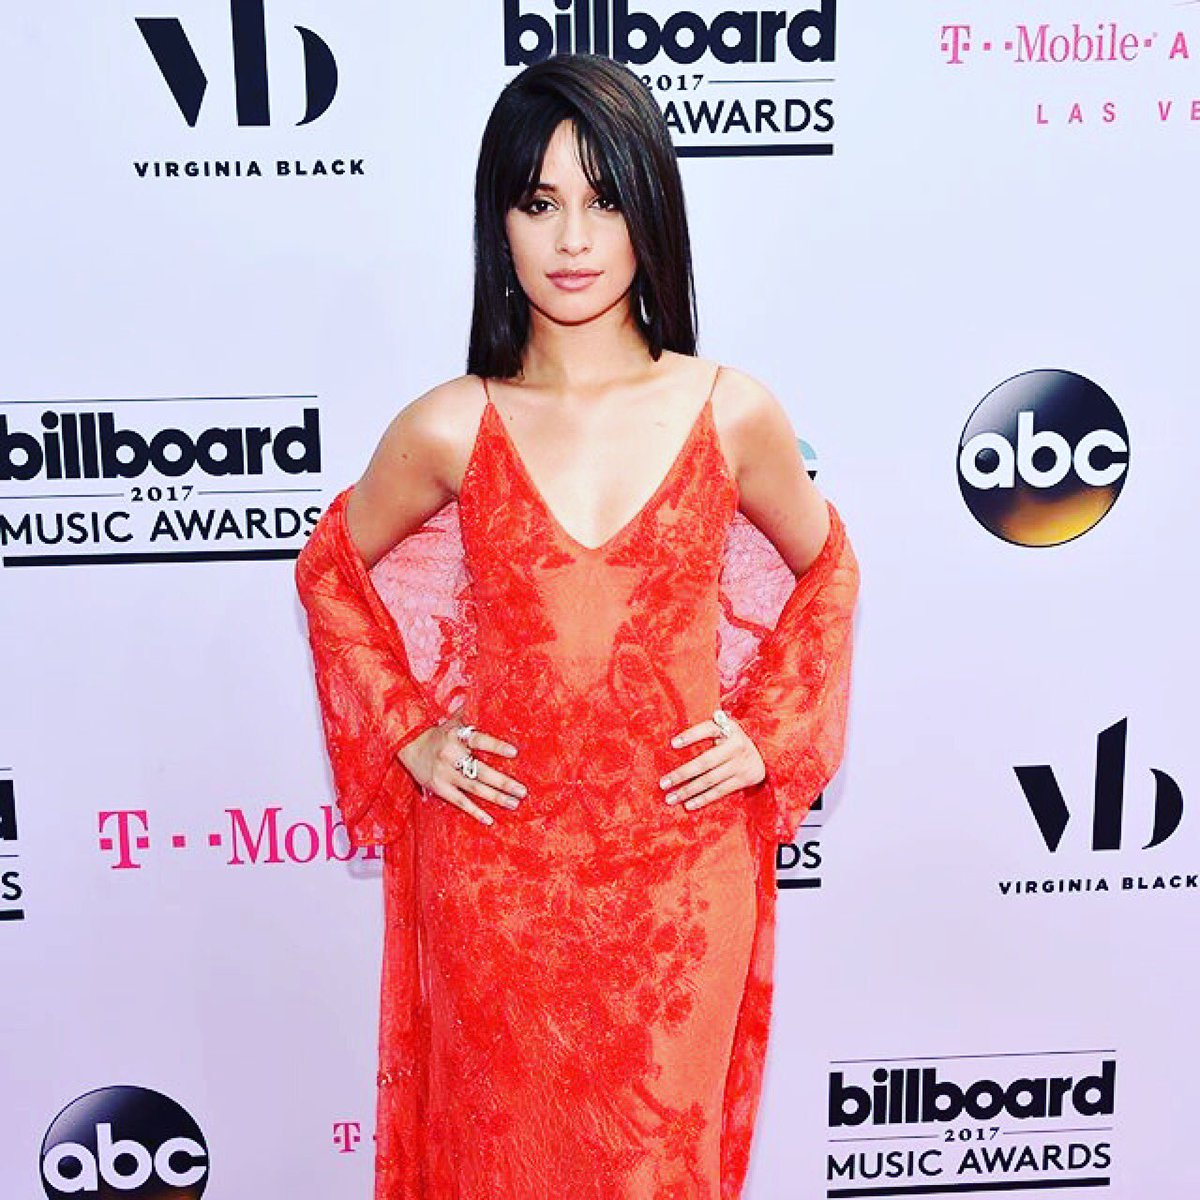 .@Camila_Cabello looks red hot at the #bbmas!! Can't wait to see you perform tonight! https://t.co/afLfYzRSzB